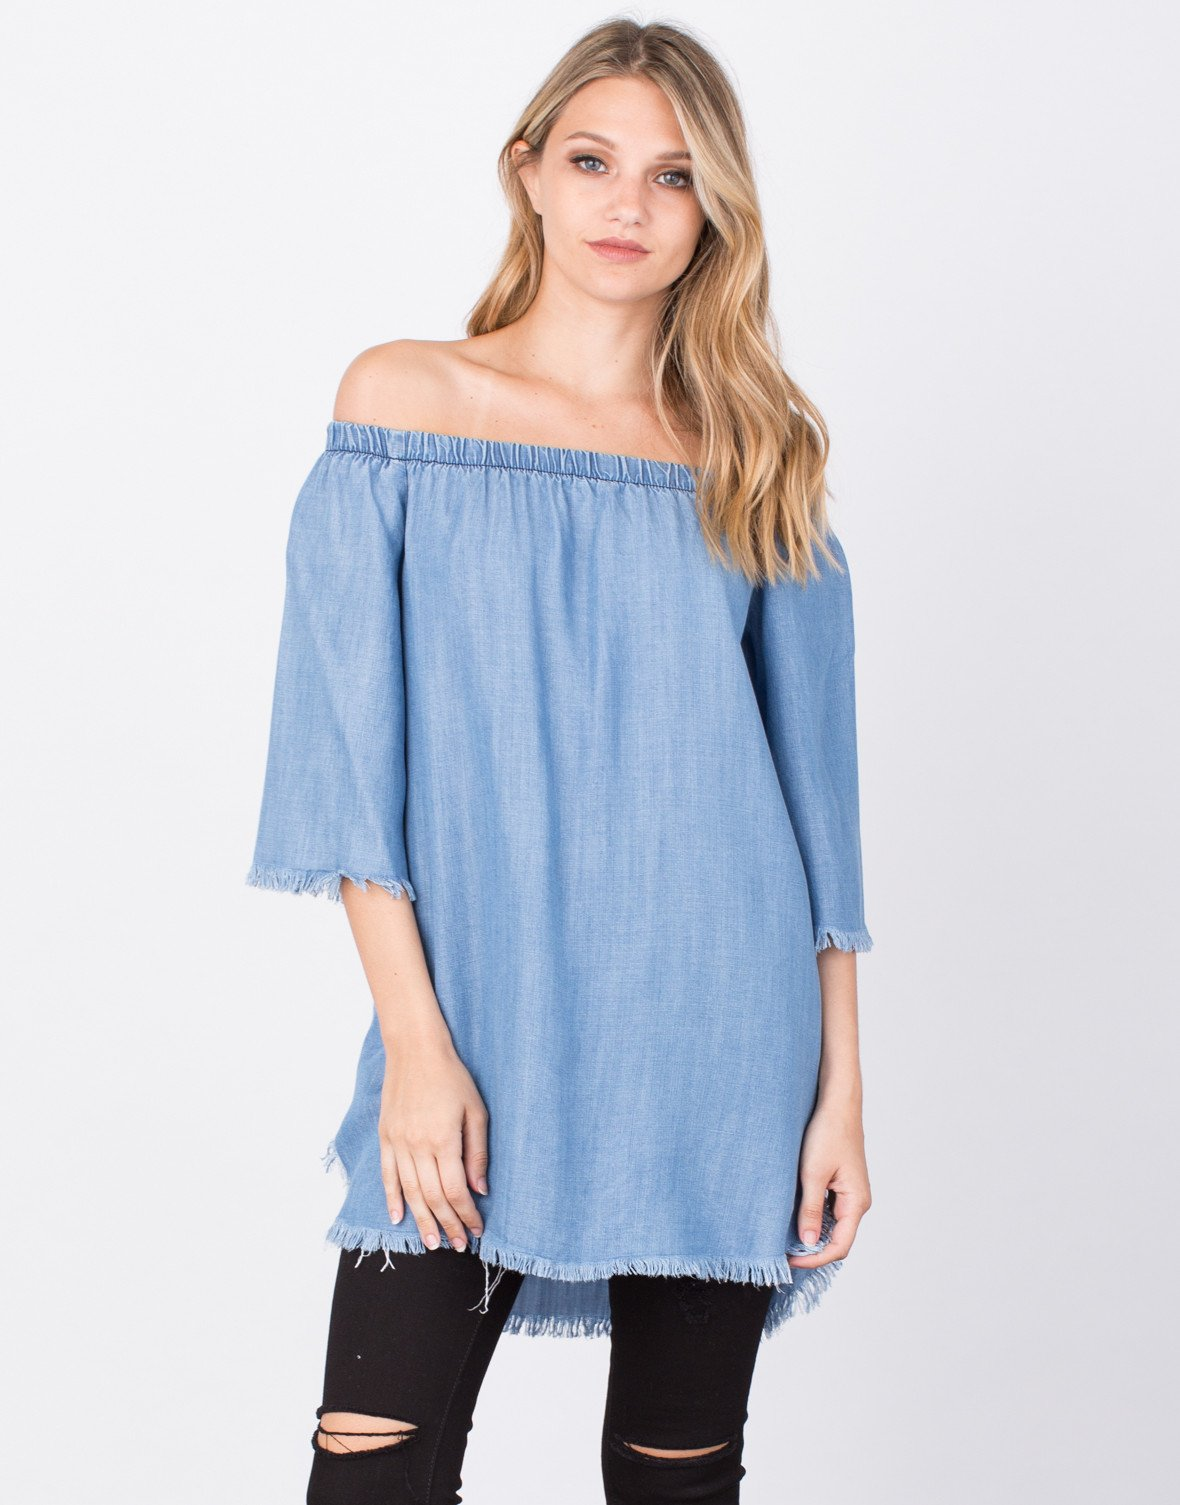 ... front view of frayed denim tunic top ... icoukef